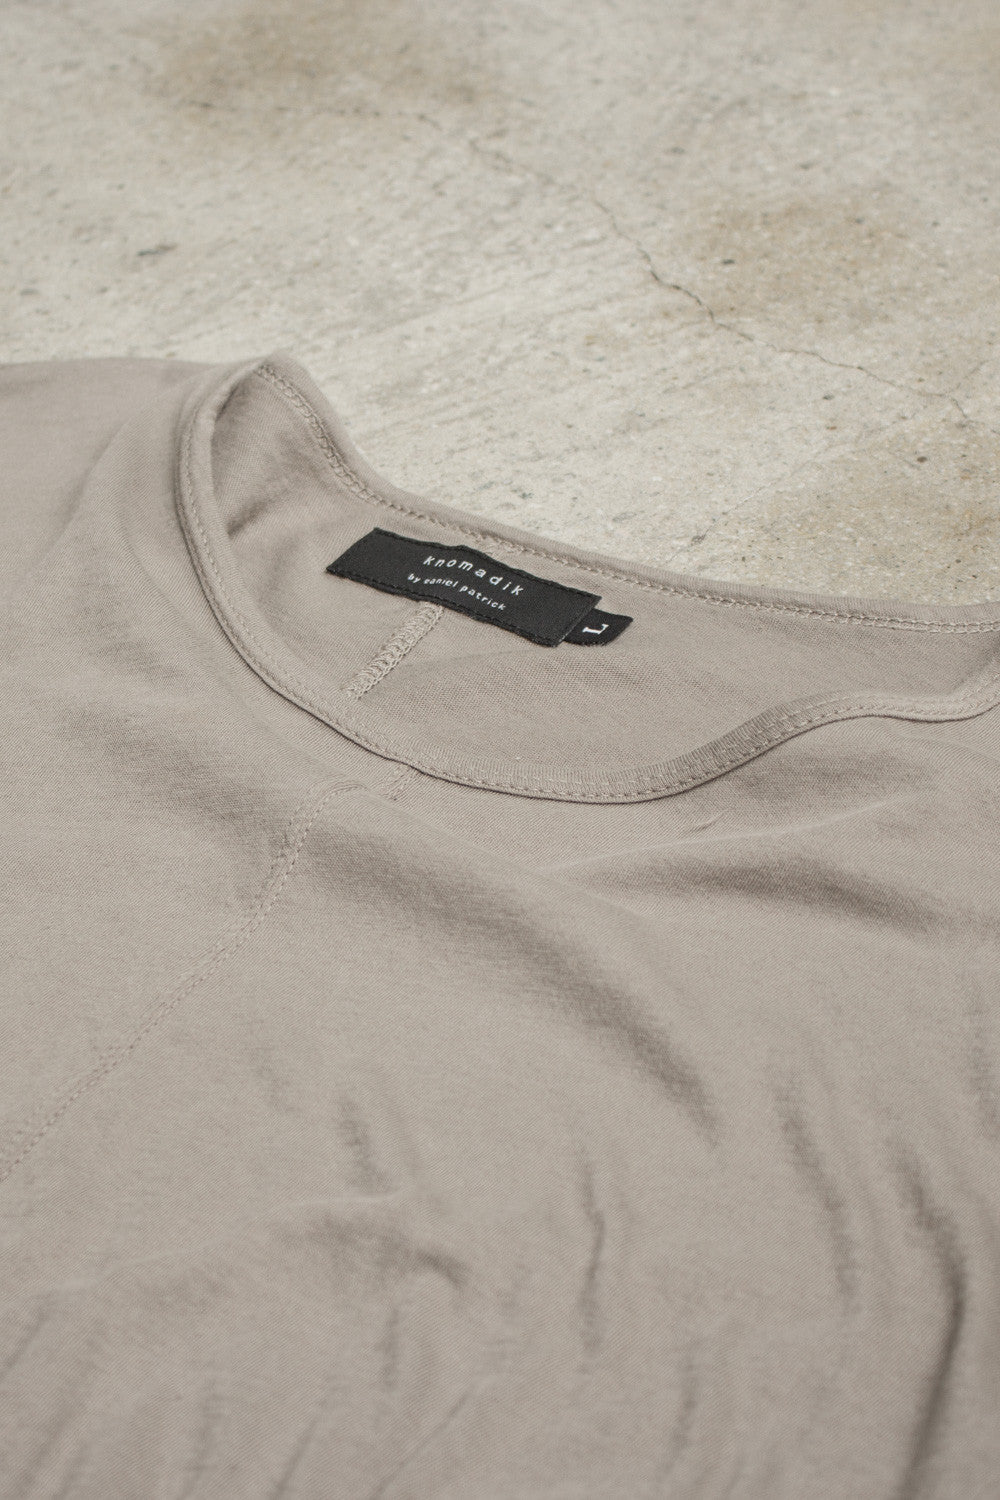 closeup of loose t-shirt